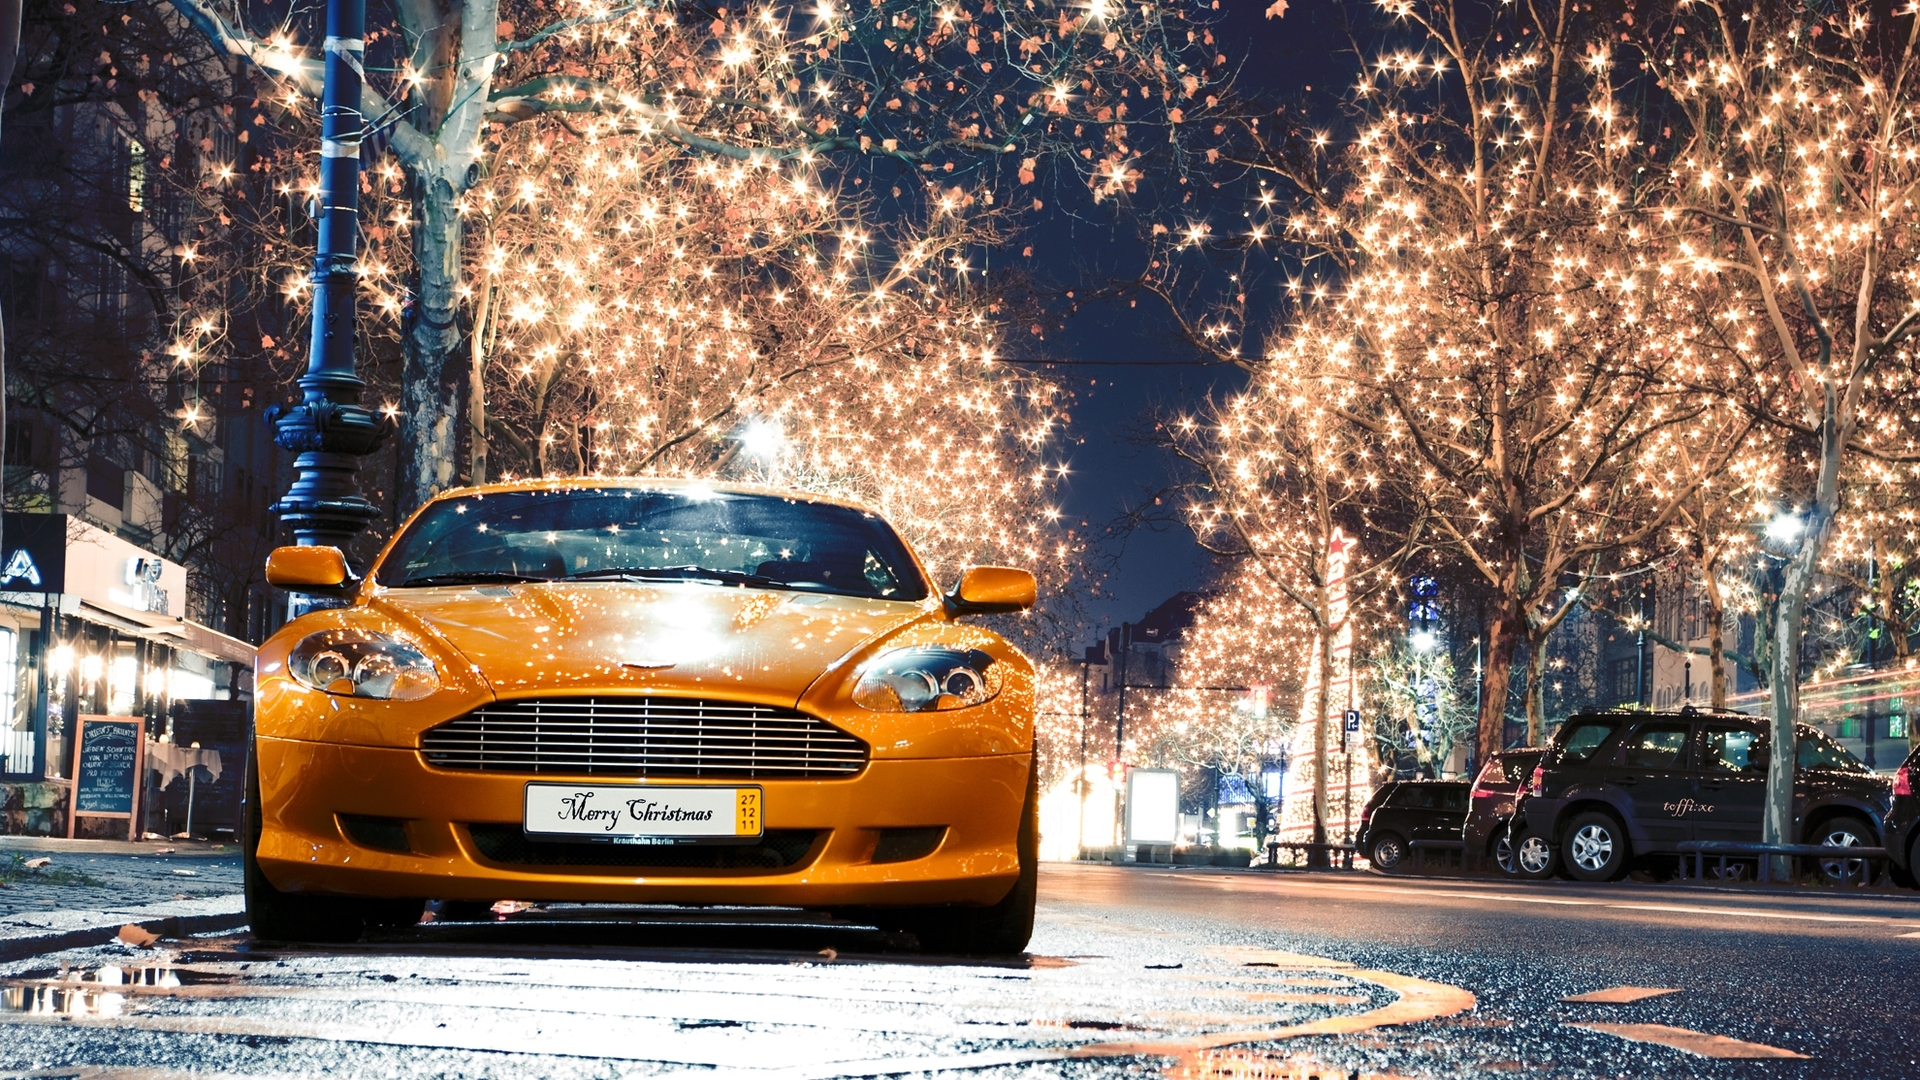 28451 download wallpaper Transport, Holidays, Auto, Christmas, Xmas screensavers and pictures for free